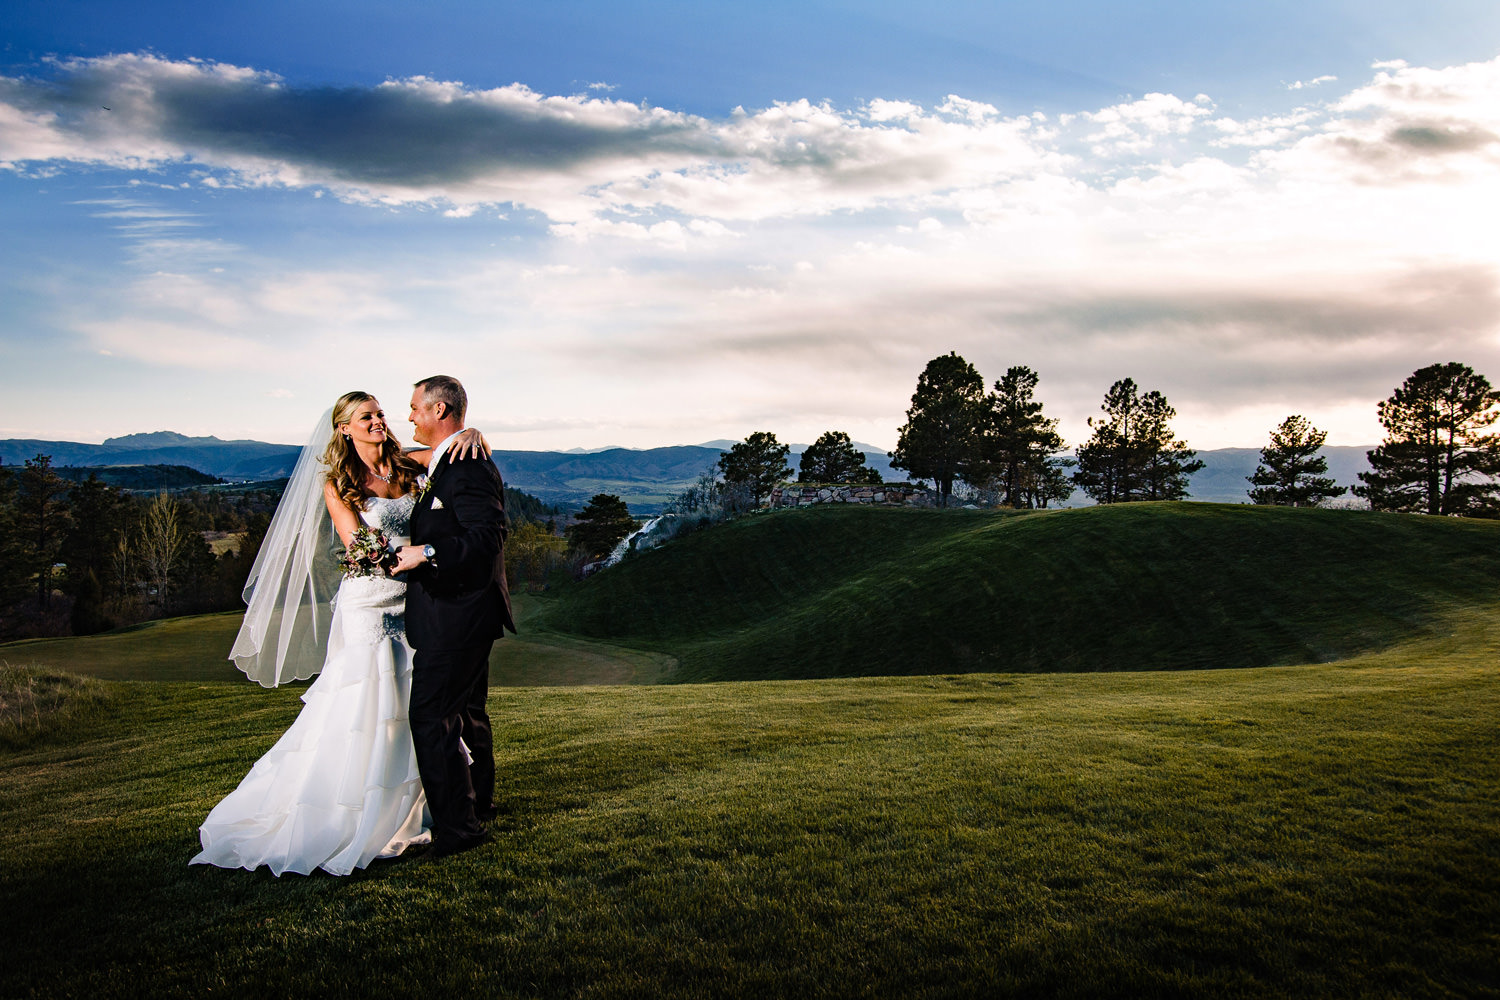 sanctuary-golf-course-wedding-photographer-tomKphoto-001.jpg